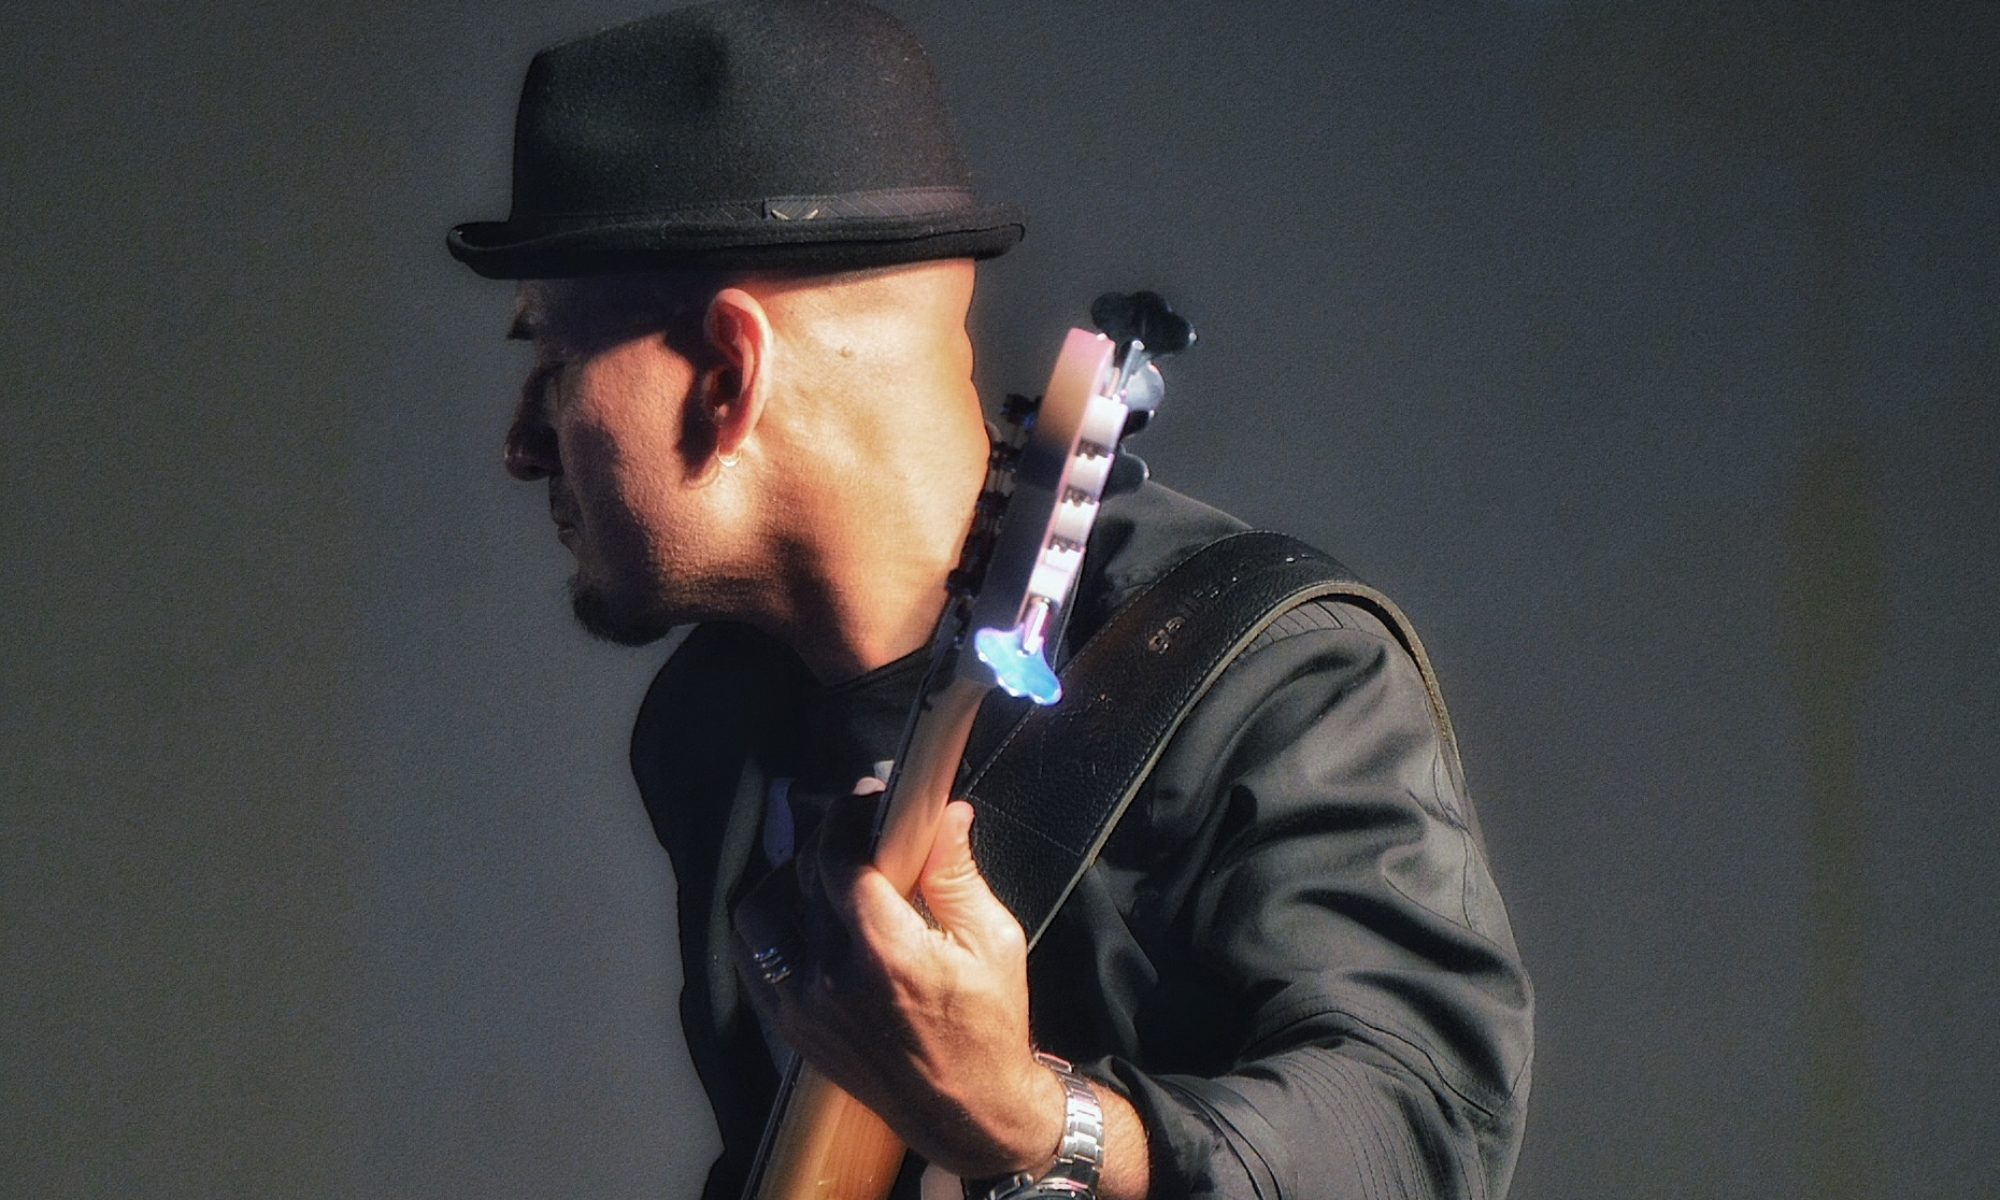 GIORGIO SANTISI BASS PLAYER